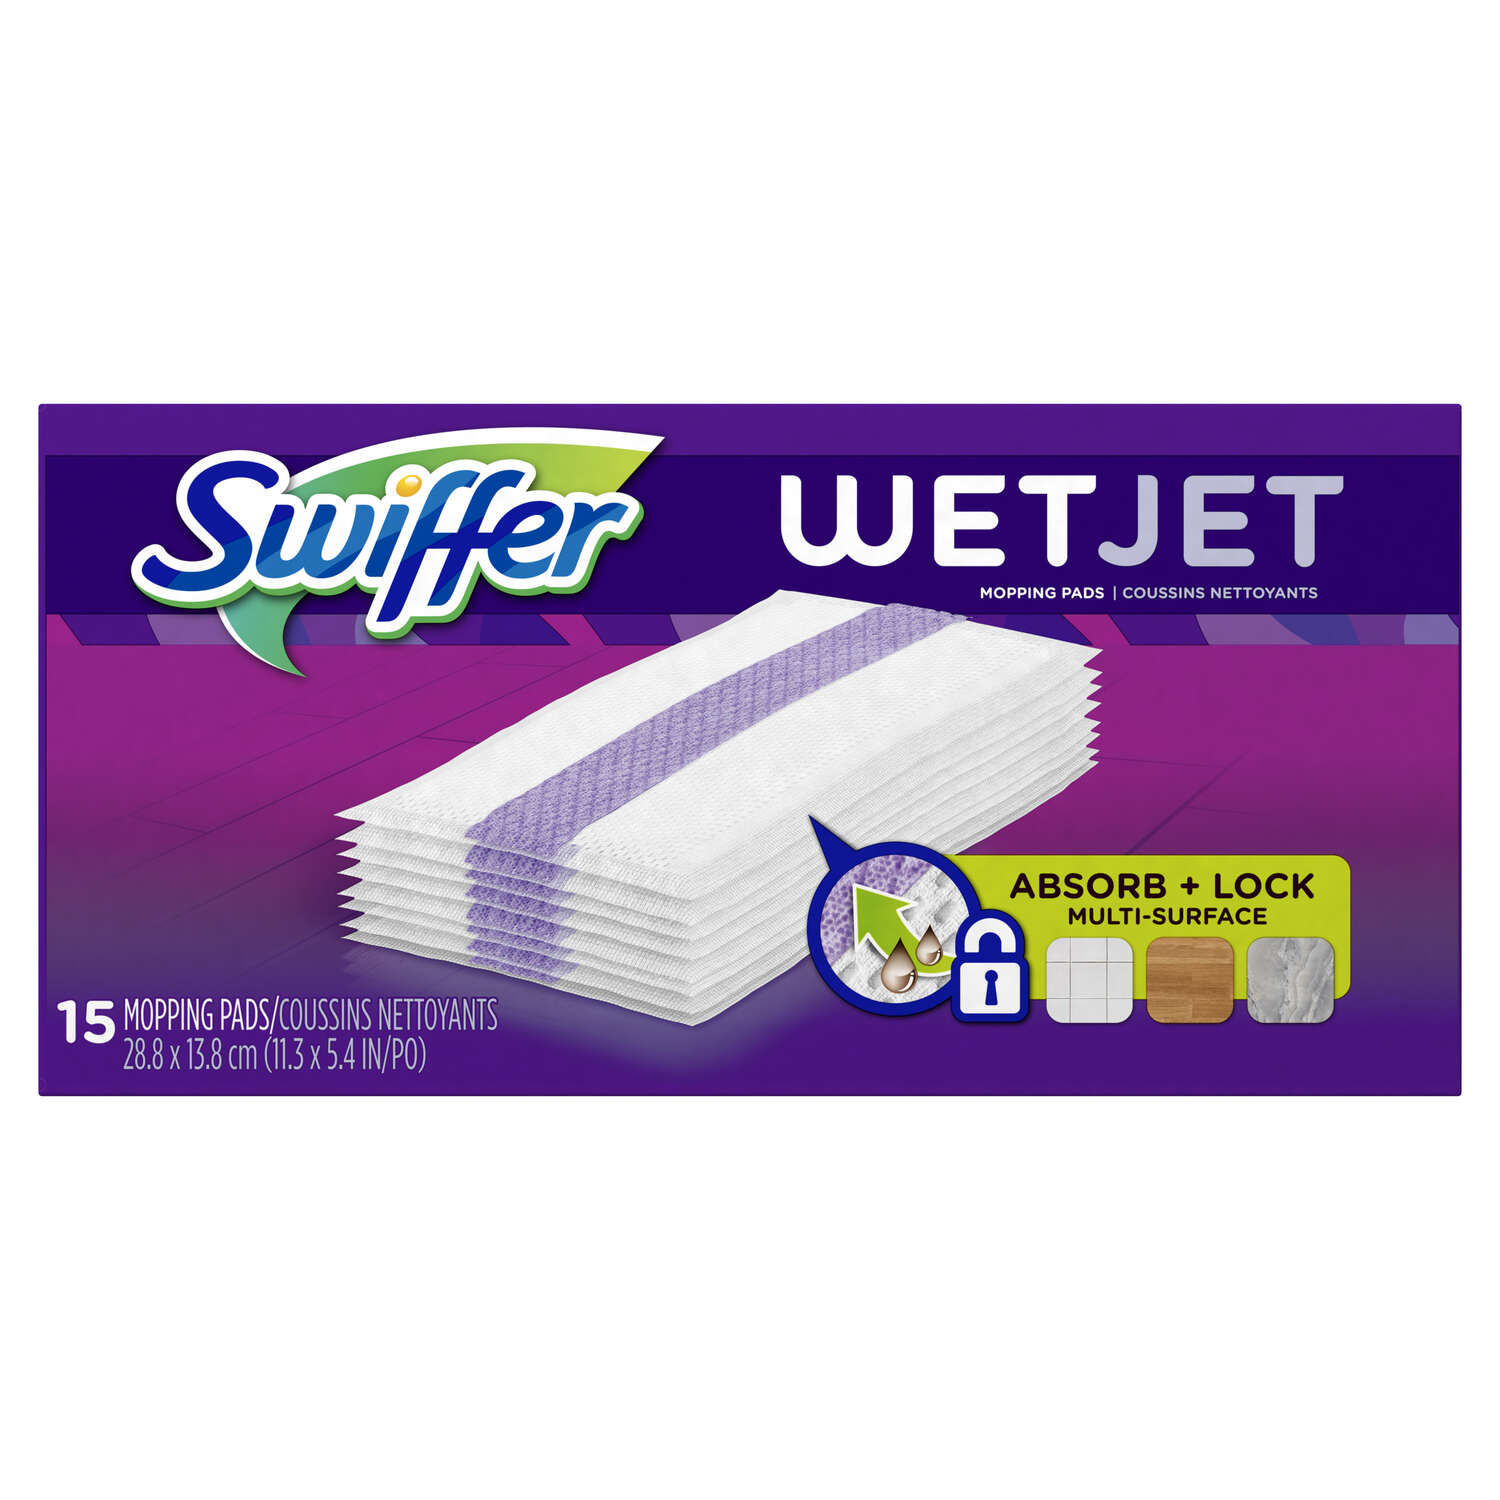 Swiffer 11.3 in. W x 5.4 in. L Wet Cloth Mop Pad 15 pk